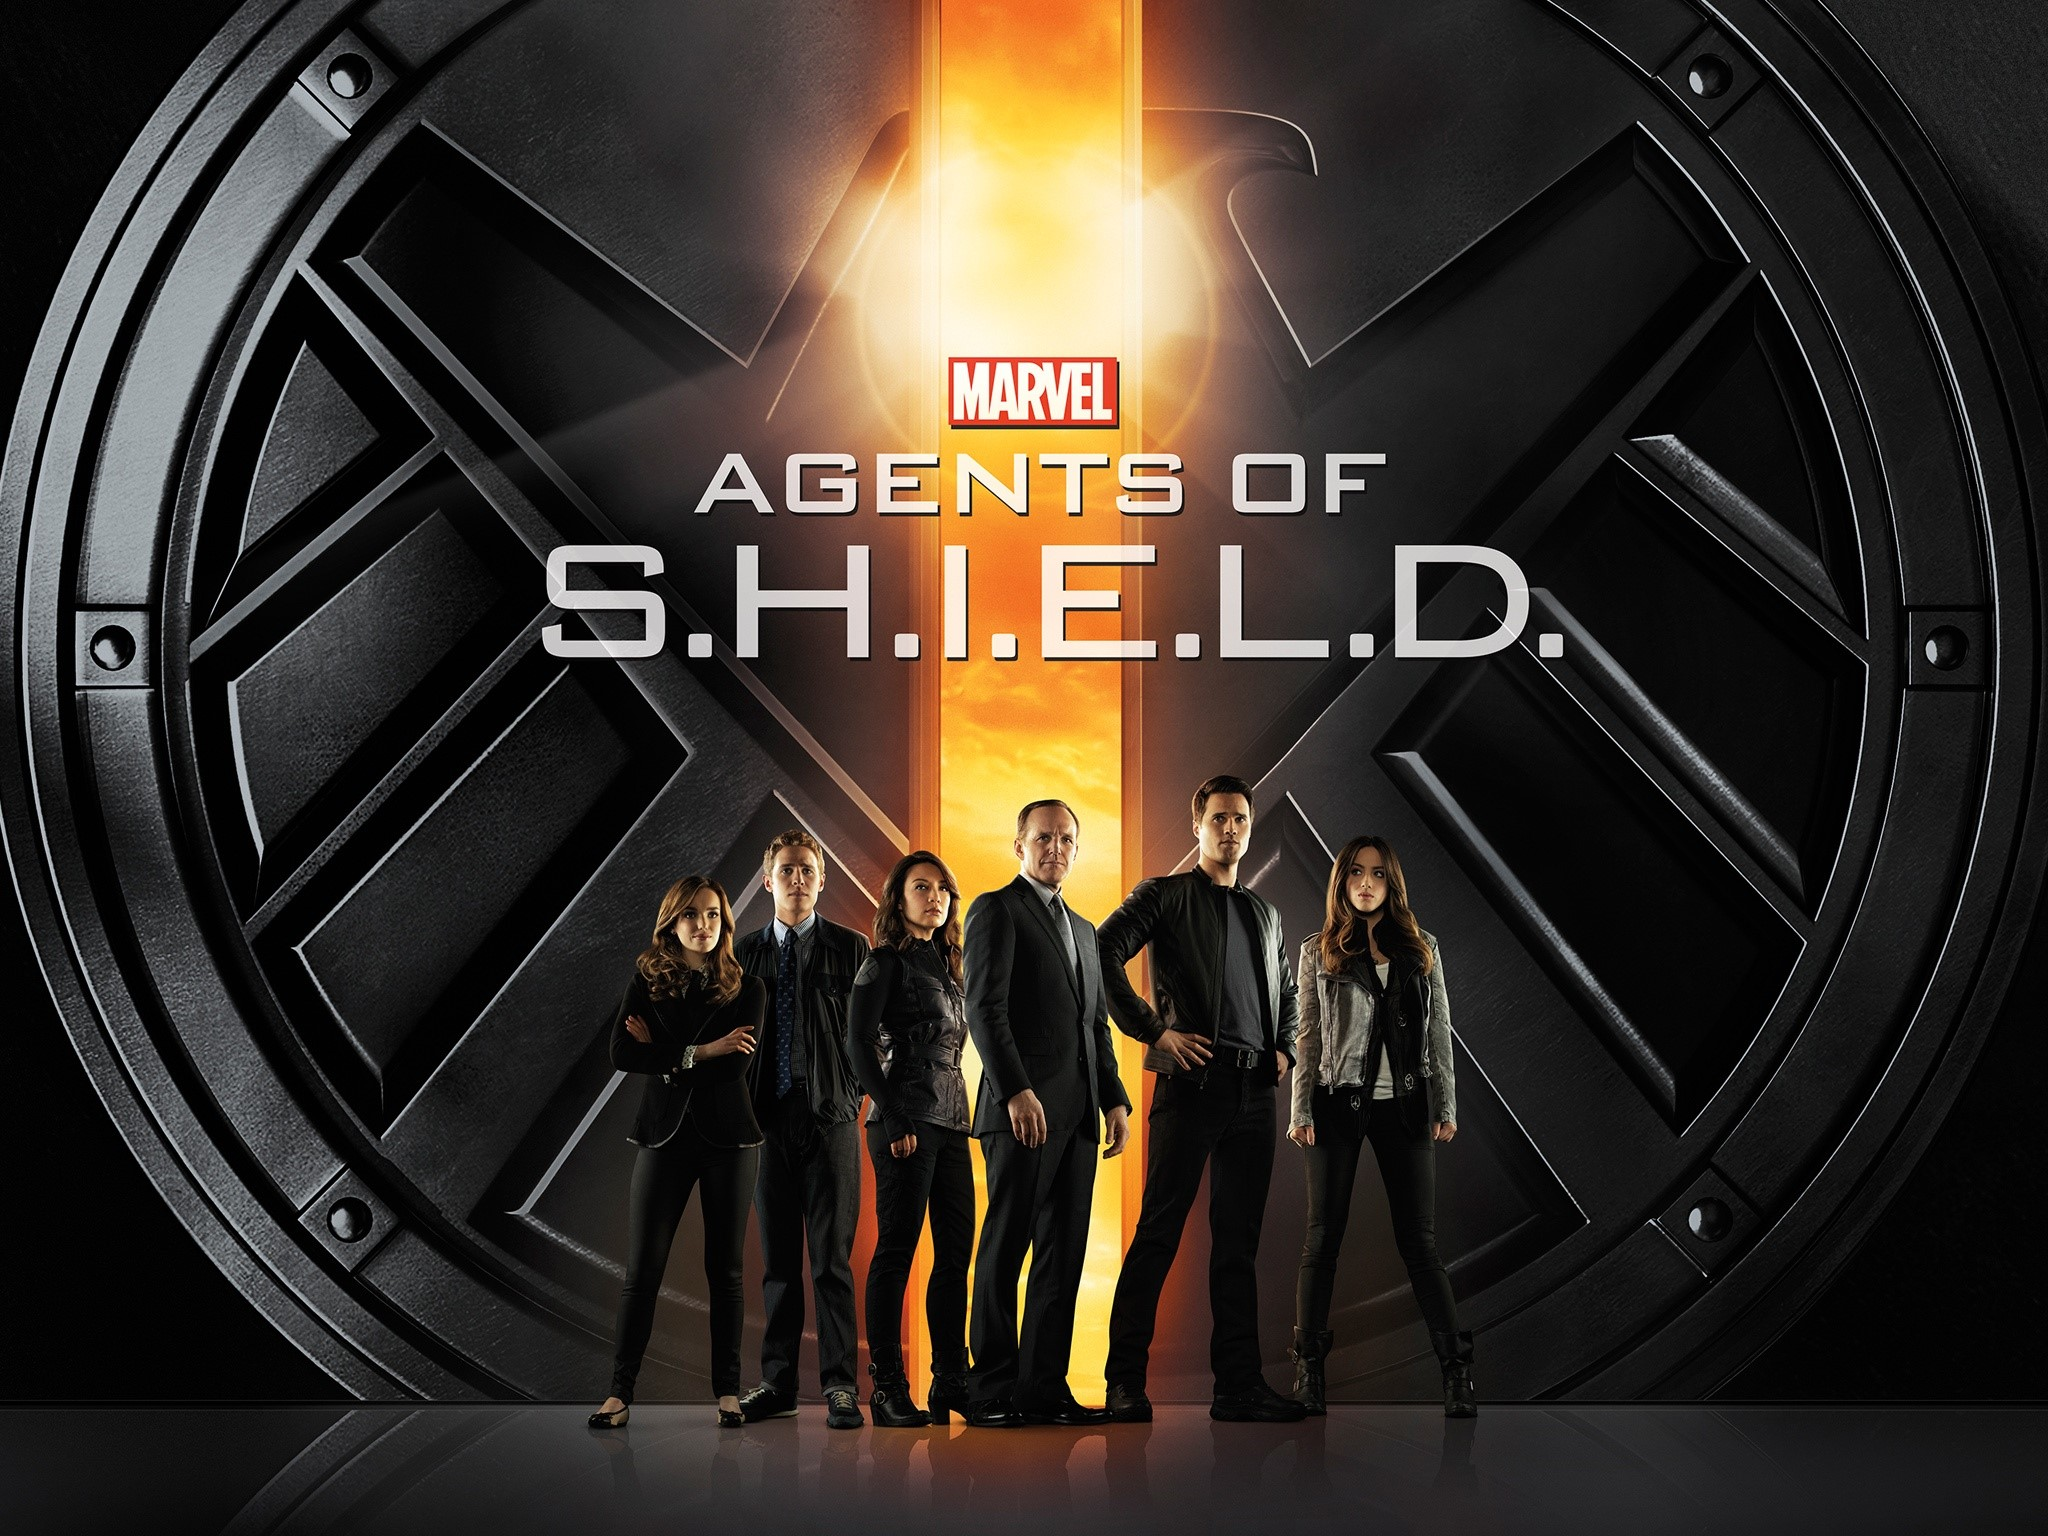 Fondos de pantalla Agents of shield